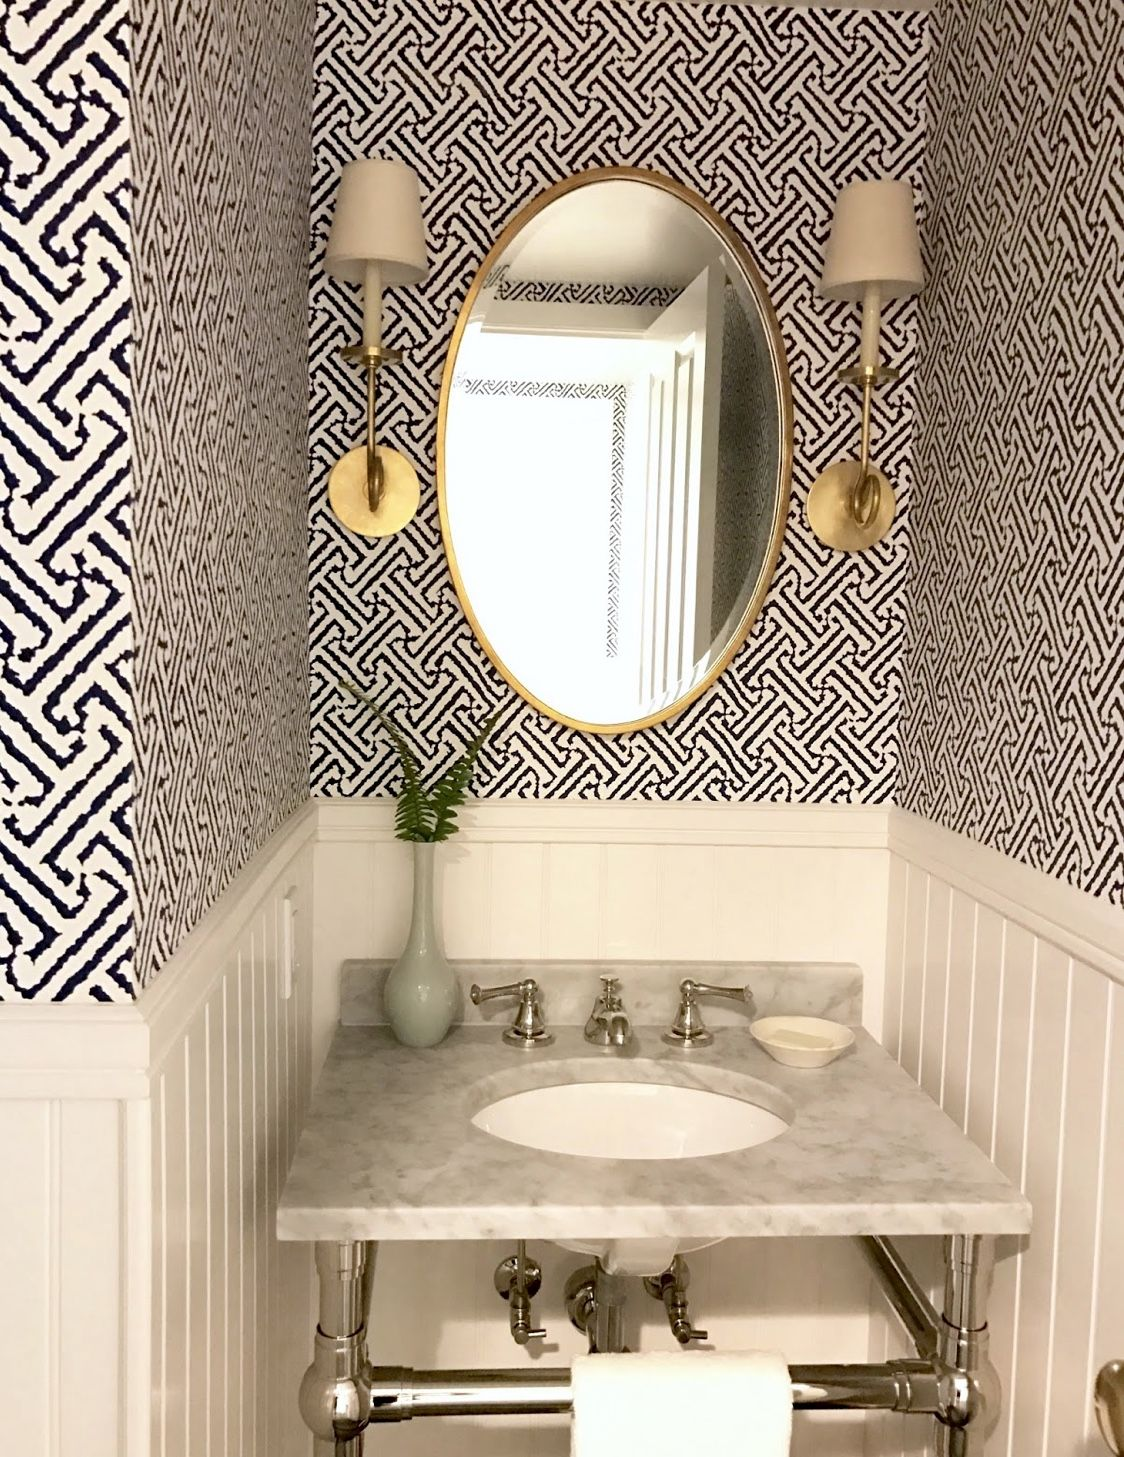 That wallpaper in 2020 (With images) Powder room decor